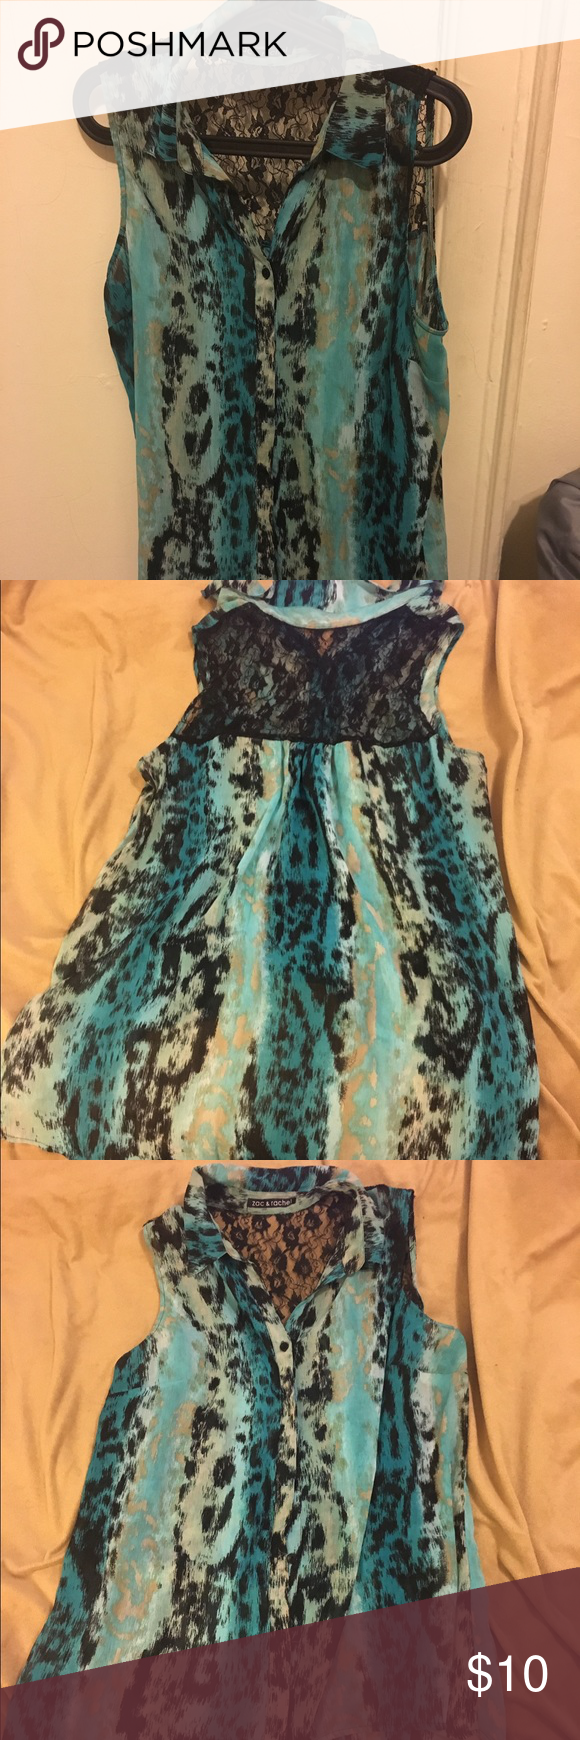 EUC! Blue-green leopard print hi-lo top with lace. Blue-green hi-lo too featuring a leopard print and lace inset on the back. Only worn a handful of times. Somewhat shear. Size XL. Tops Blouses